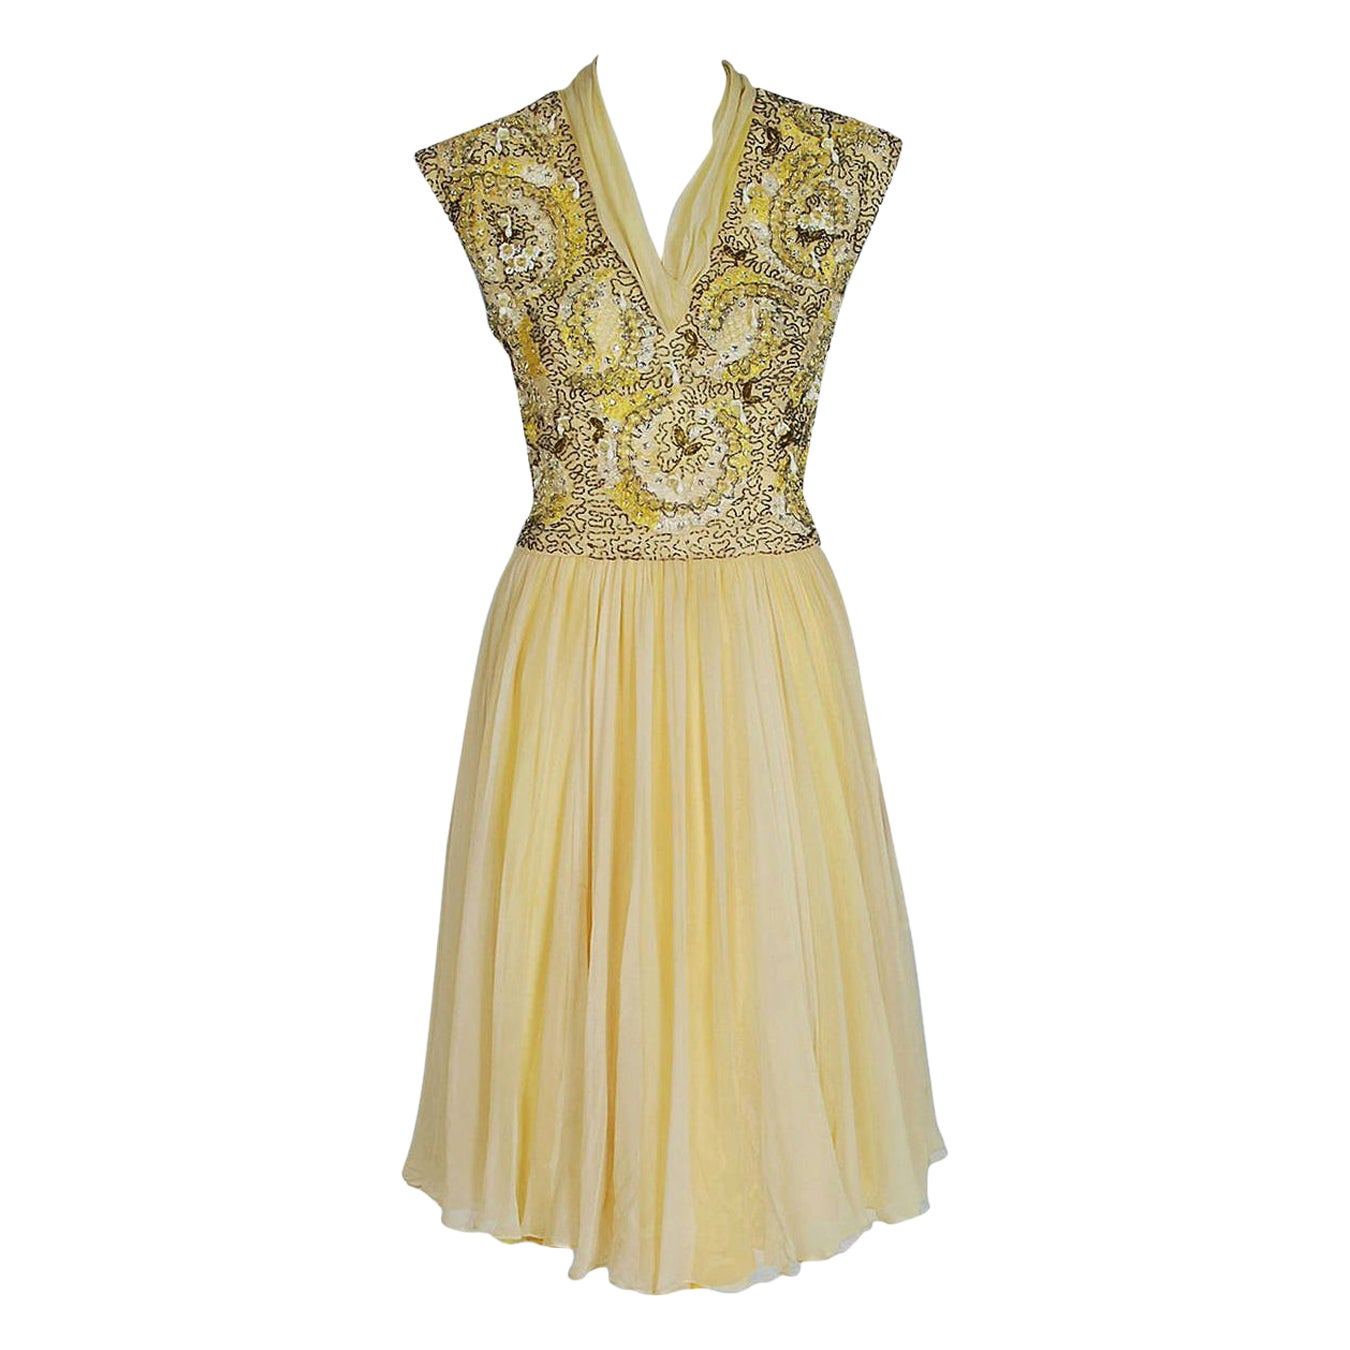 Vintage 1960's Pat Sandler Pale Yellow Beaded Embroidered Silk Chiffon Dress